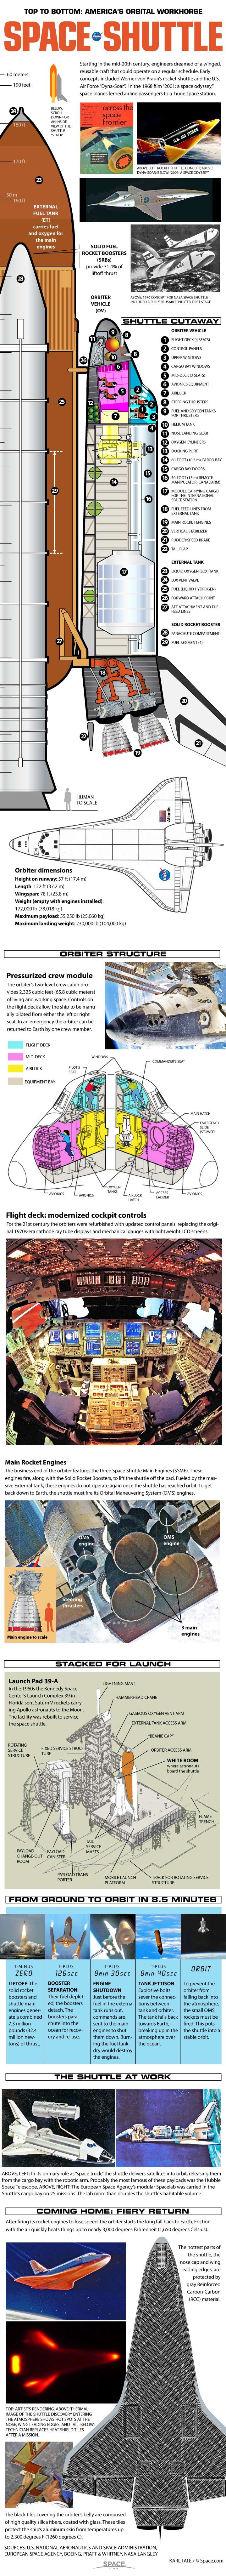 A graphical representation of NASA's space shuttle – including orbiter structure, launch preparation and reentry, and the space shuttle fleet – at SPACE.com